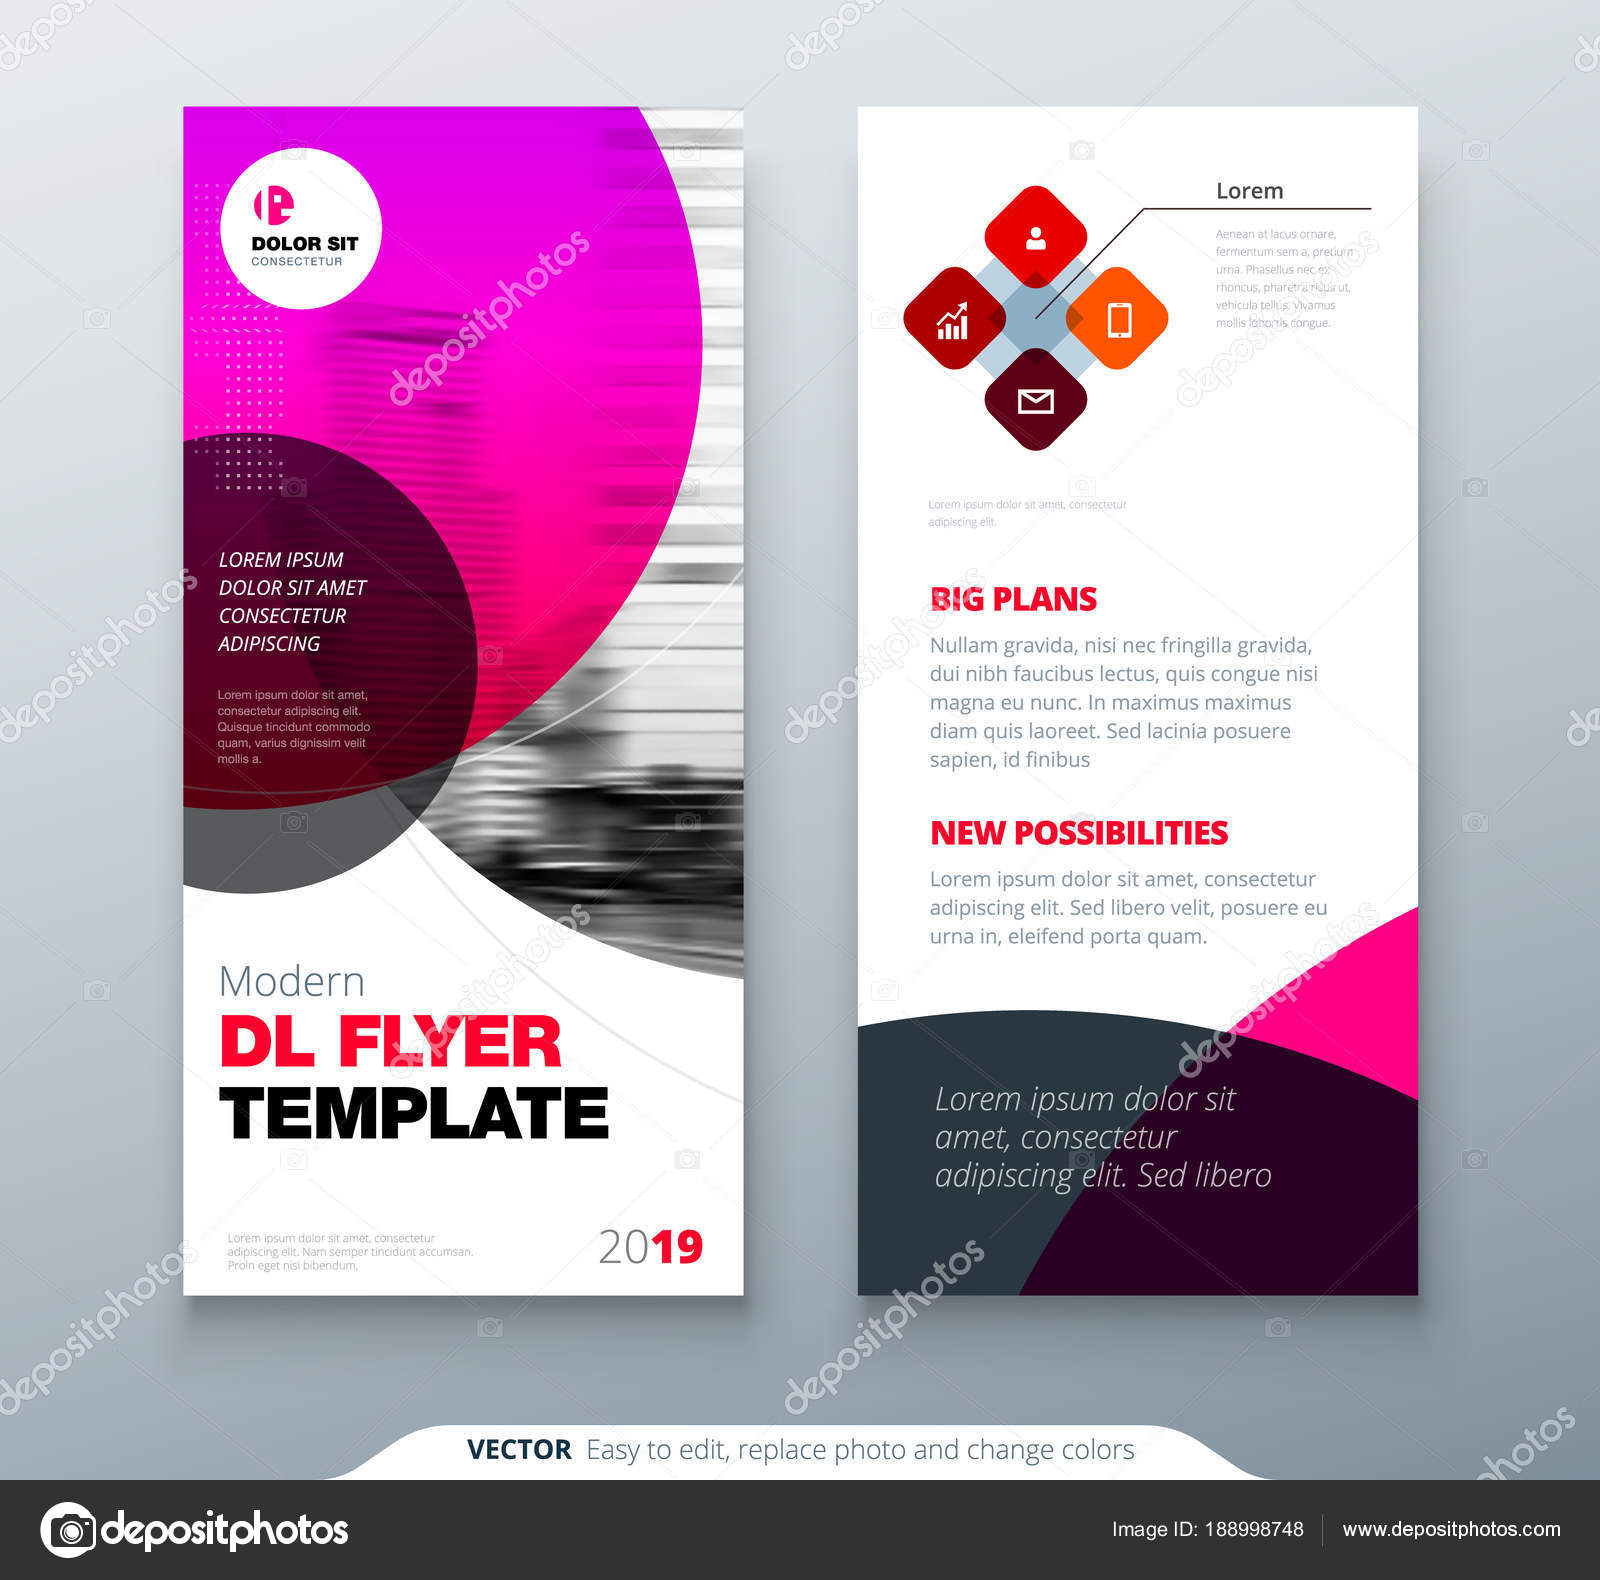 DL Flyer design. Pink business template for dl flyer. Layout with ...